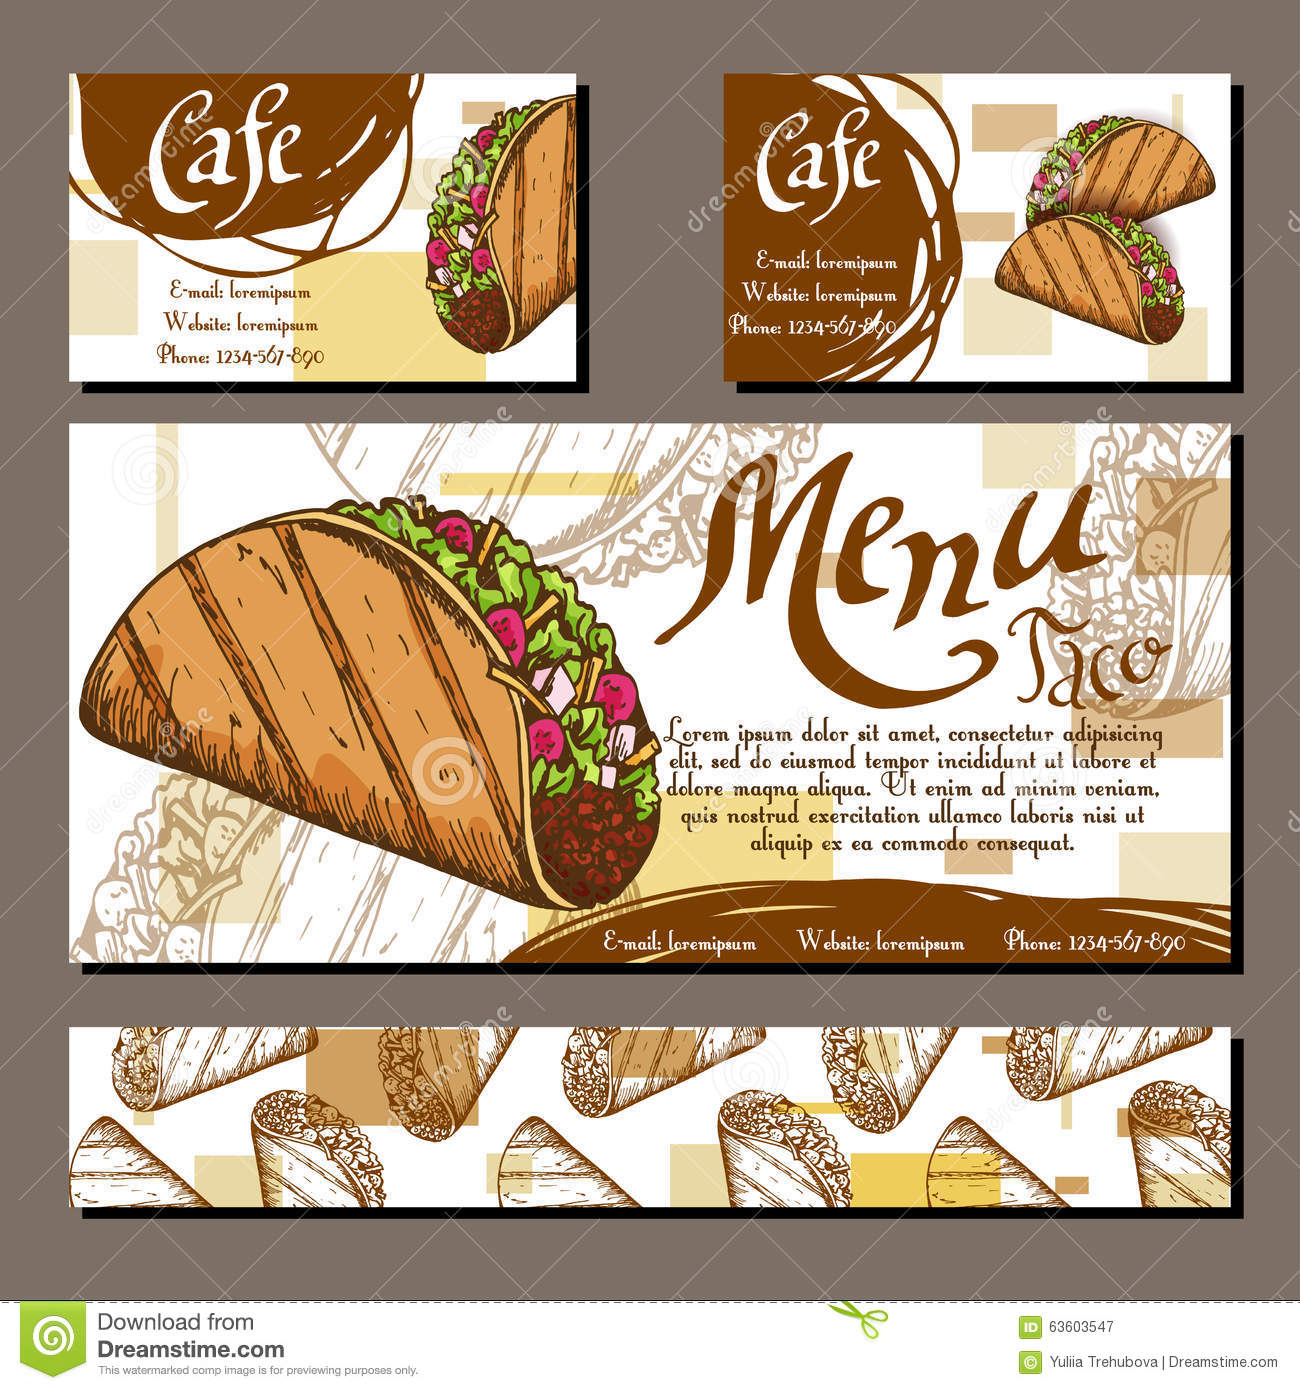 food menu template - novasatfm.tk